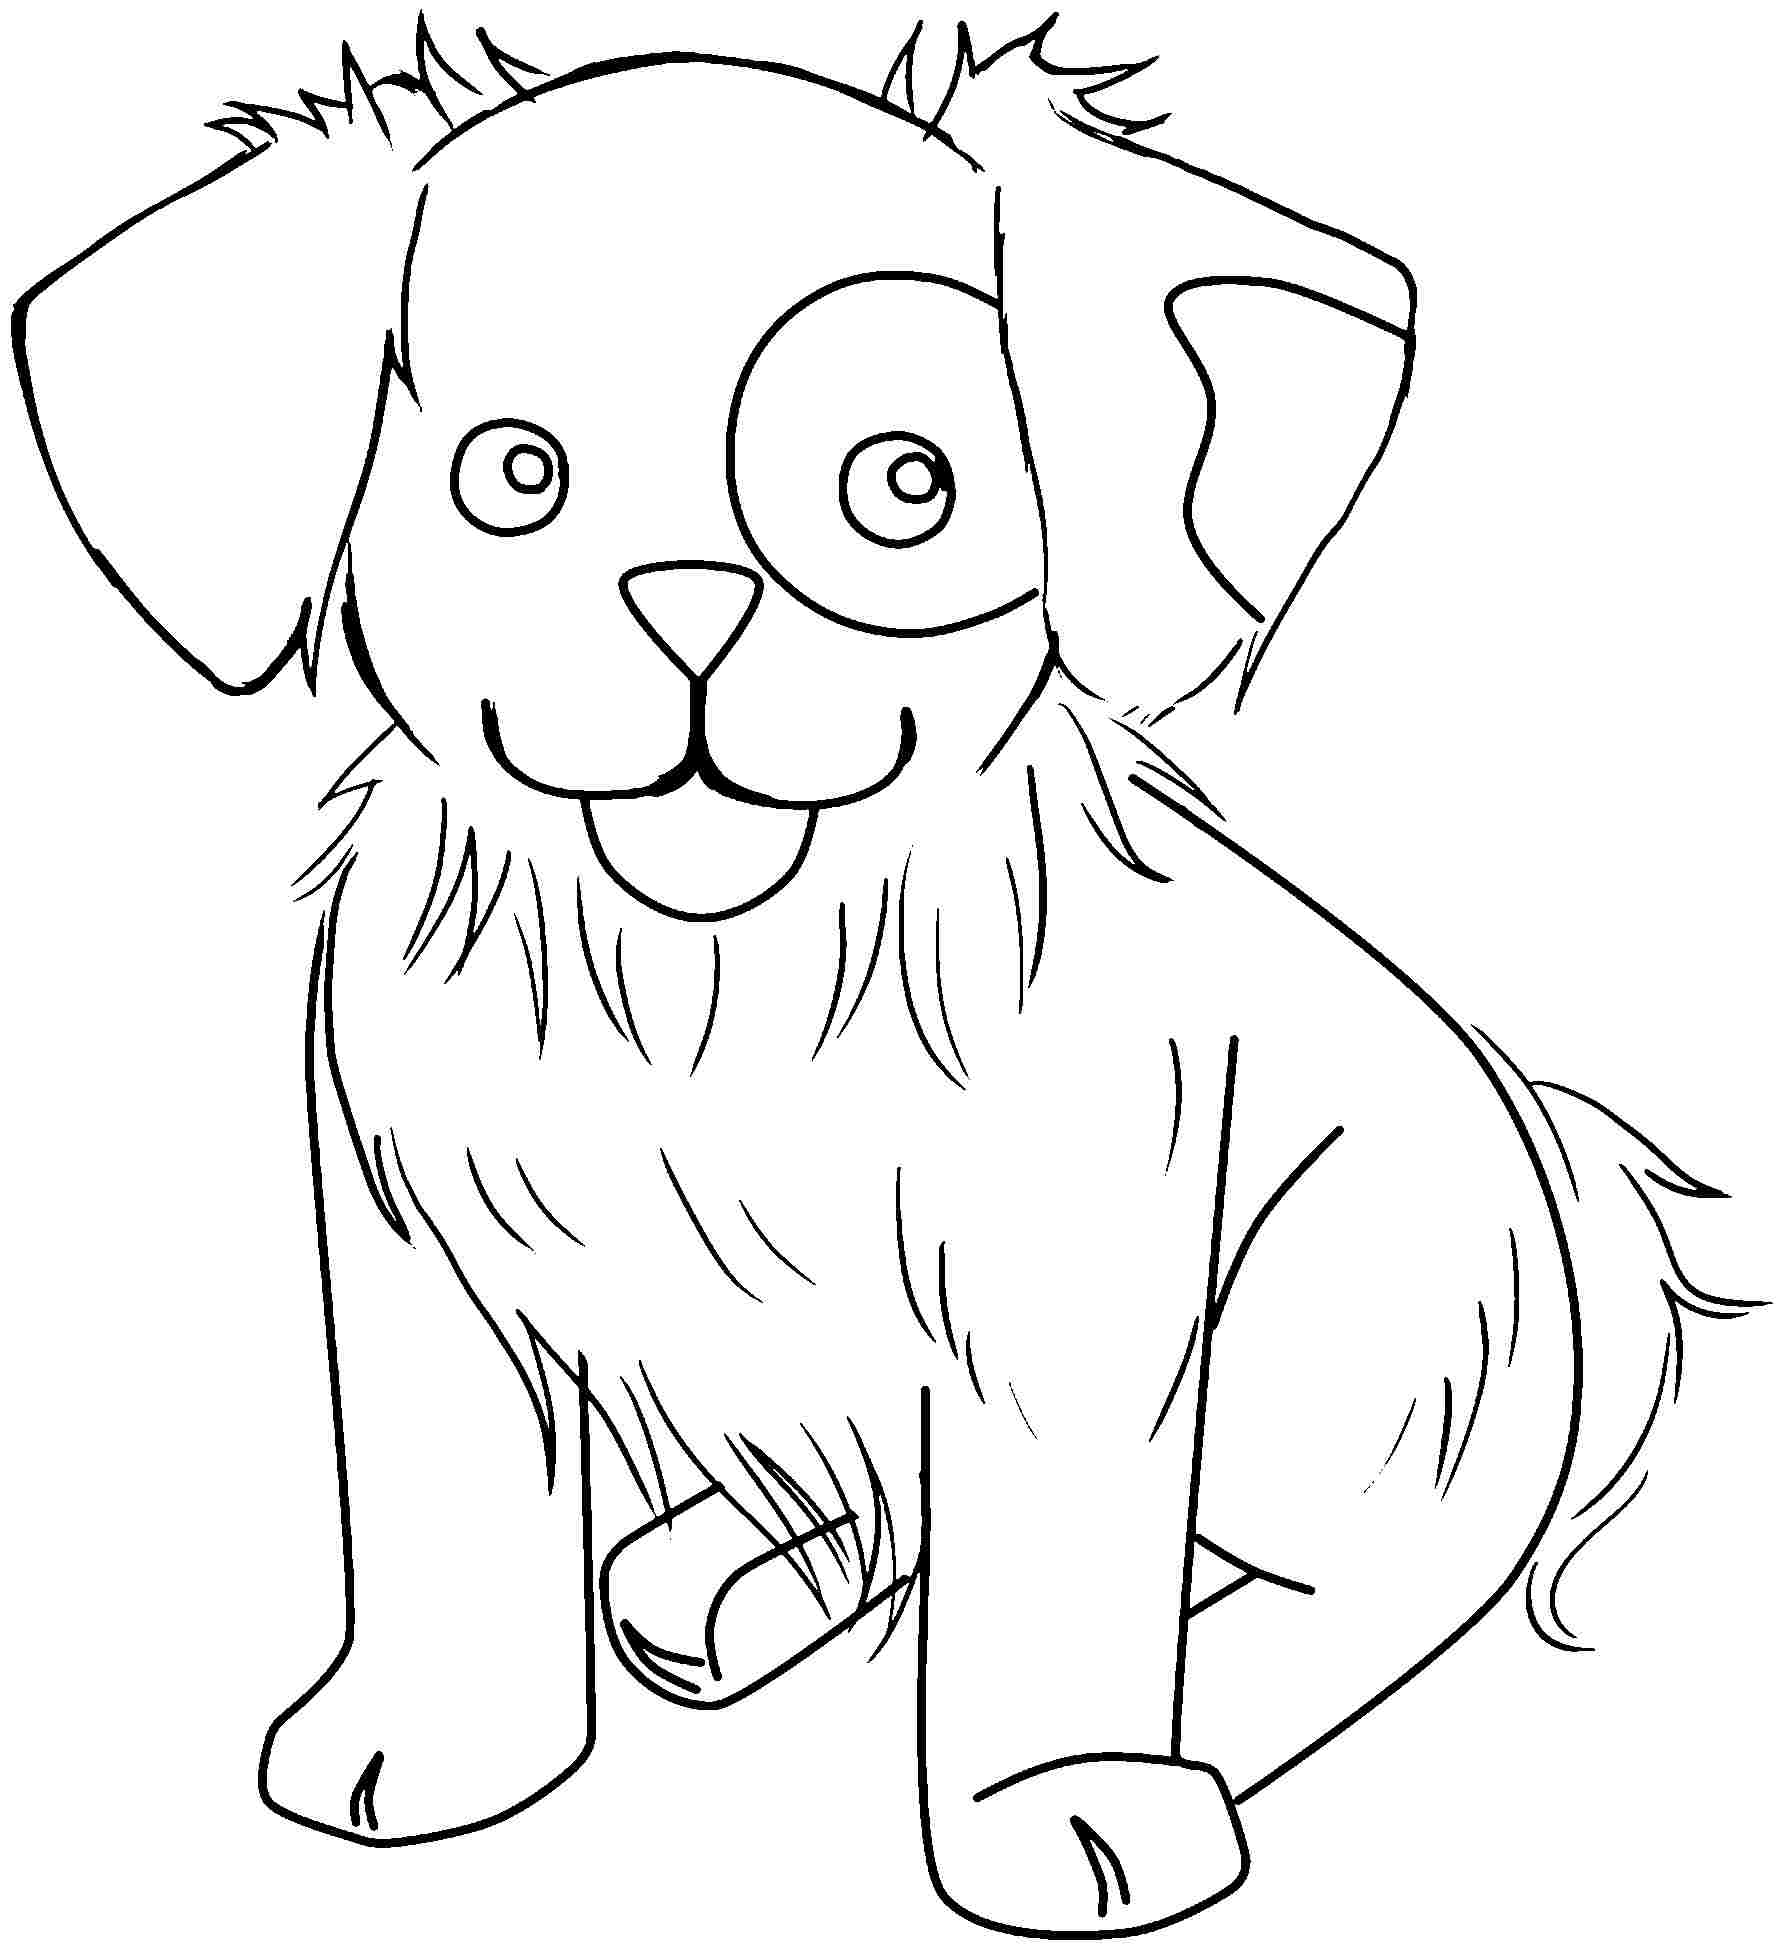 Free coloring pages- zebra print